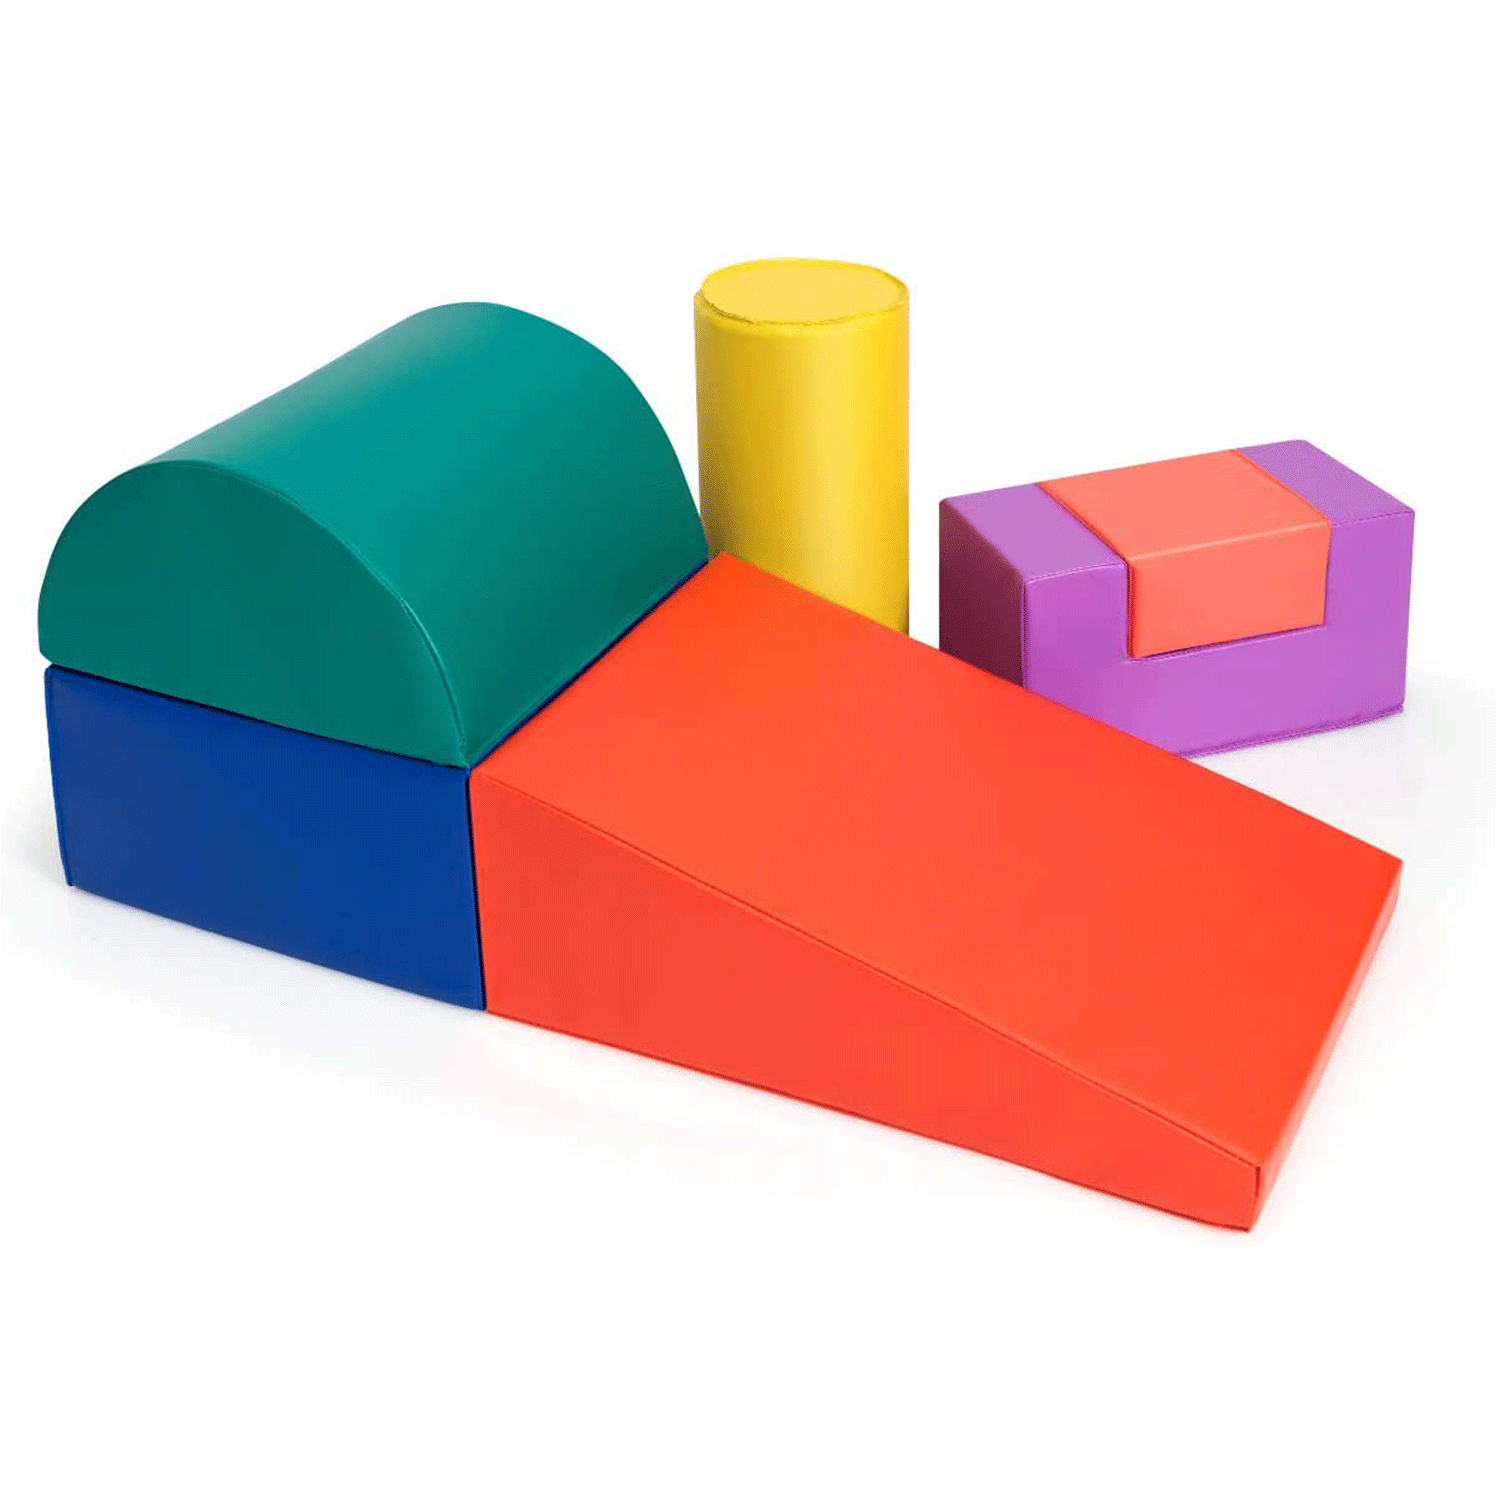 goplus-set-di-6-blocchi-cubi-psicomotricita-educativi.png